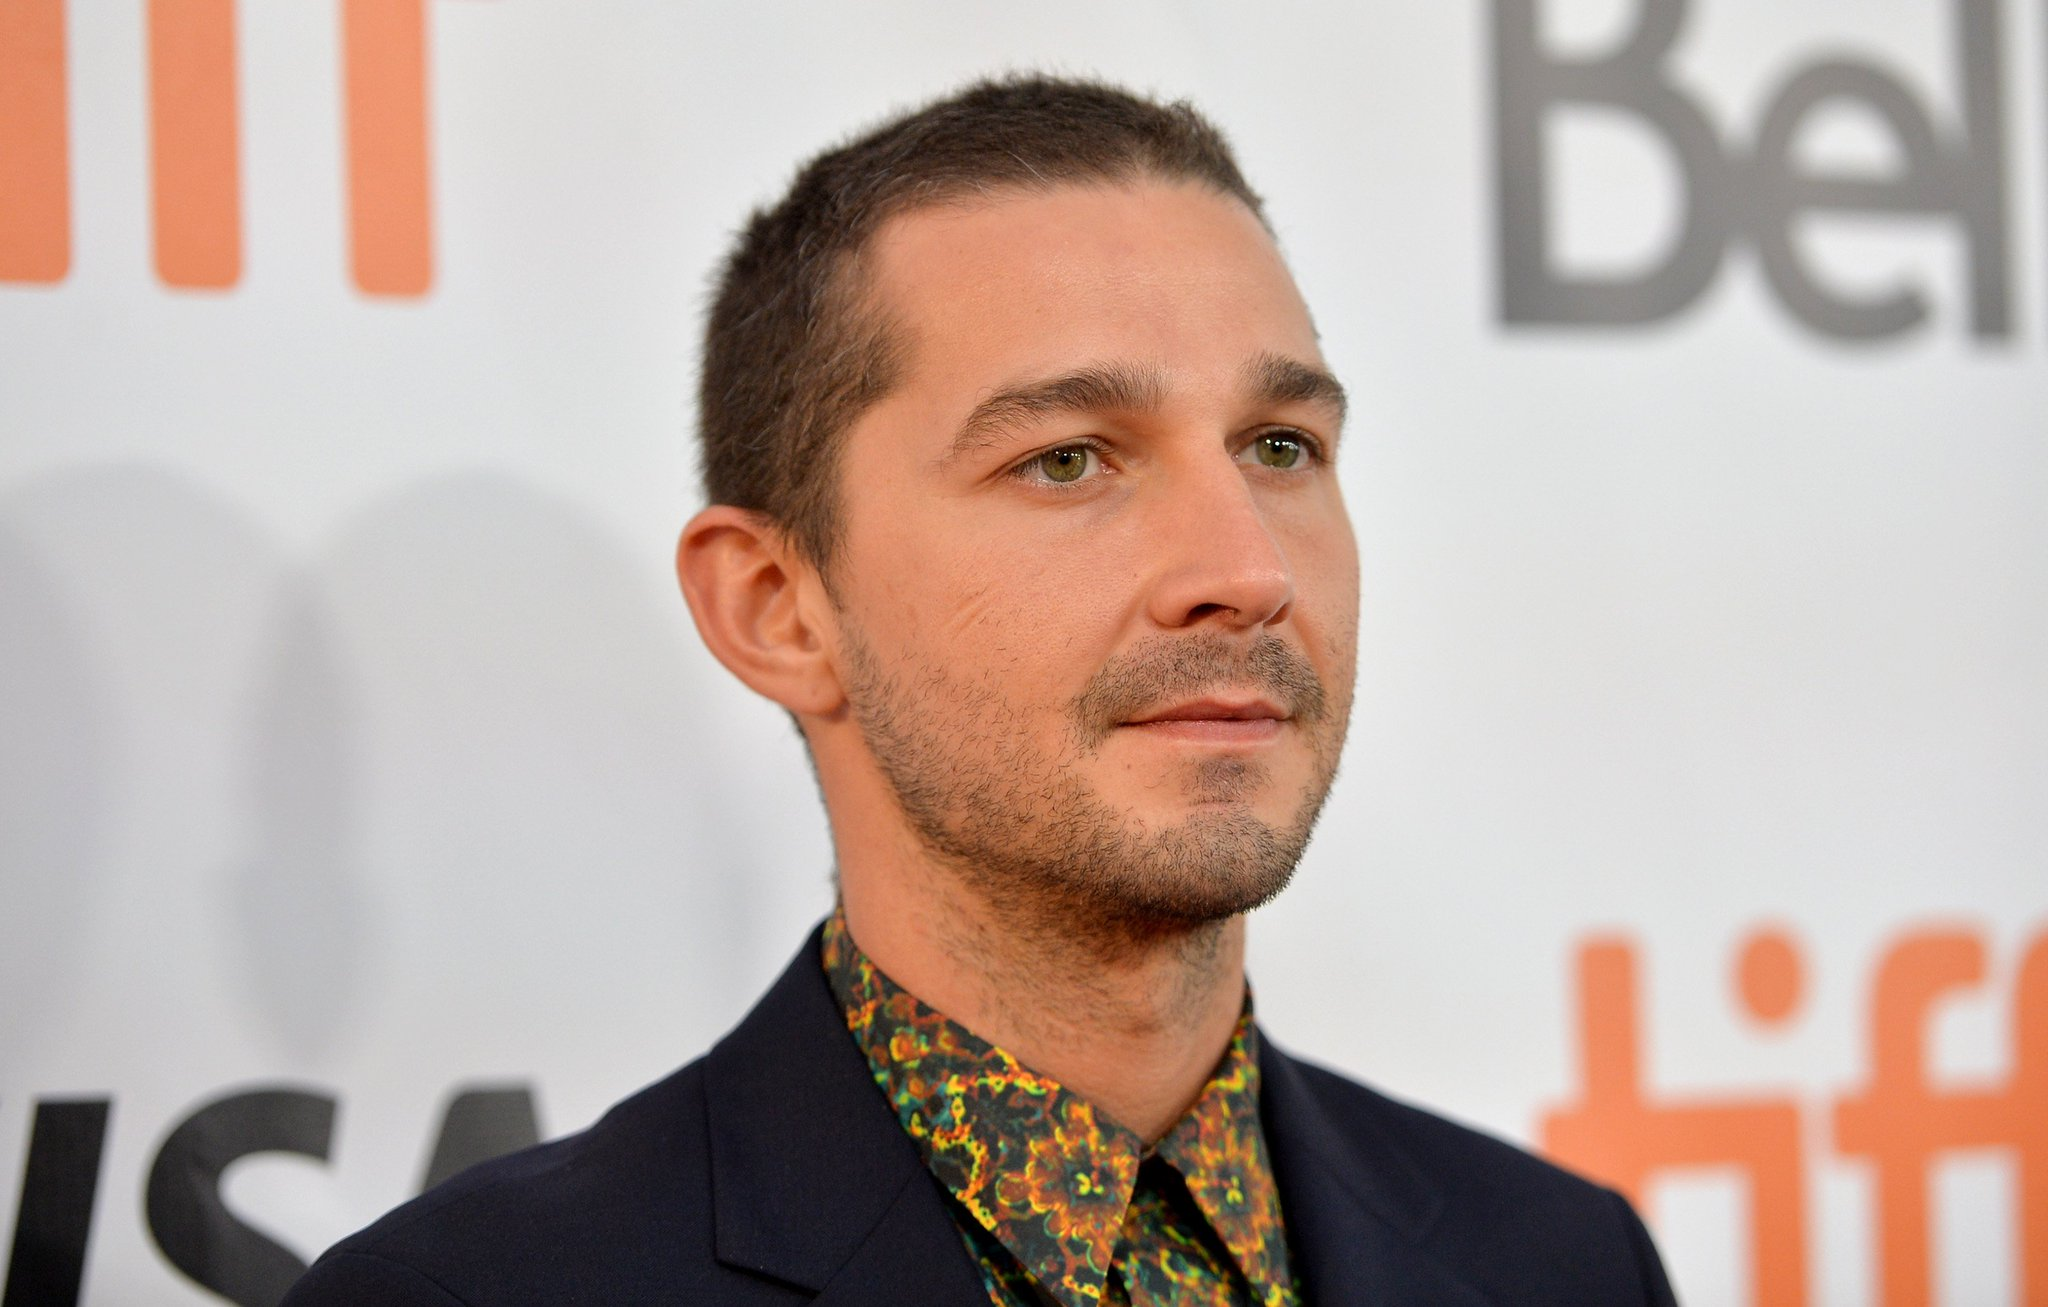 """Shia LaBeouf on Kanye West: """"He took all my fucking clothes.' https://t.co/5fhSyPROAZ https://t.co/ylBvi8meVq"""